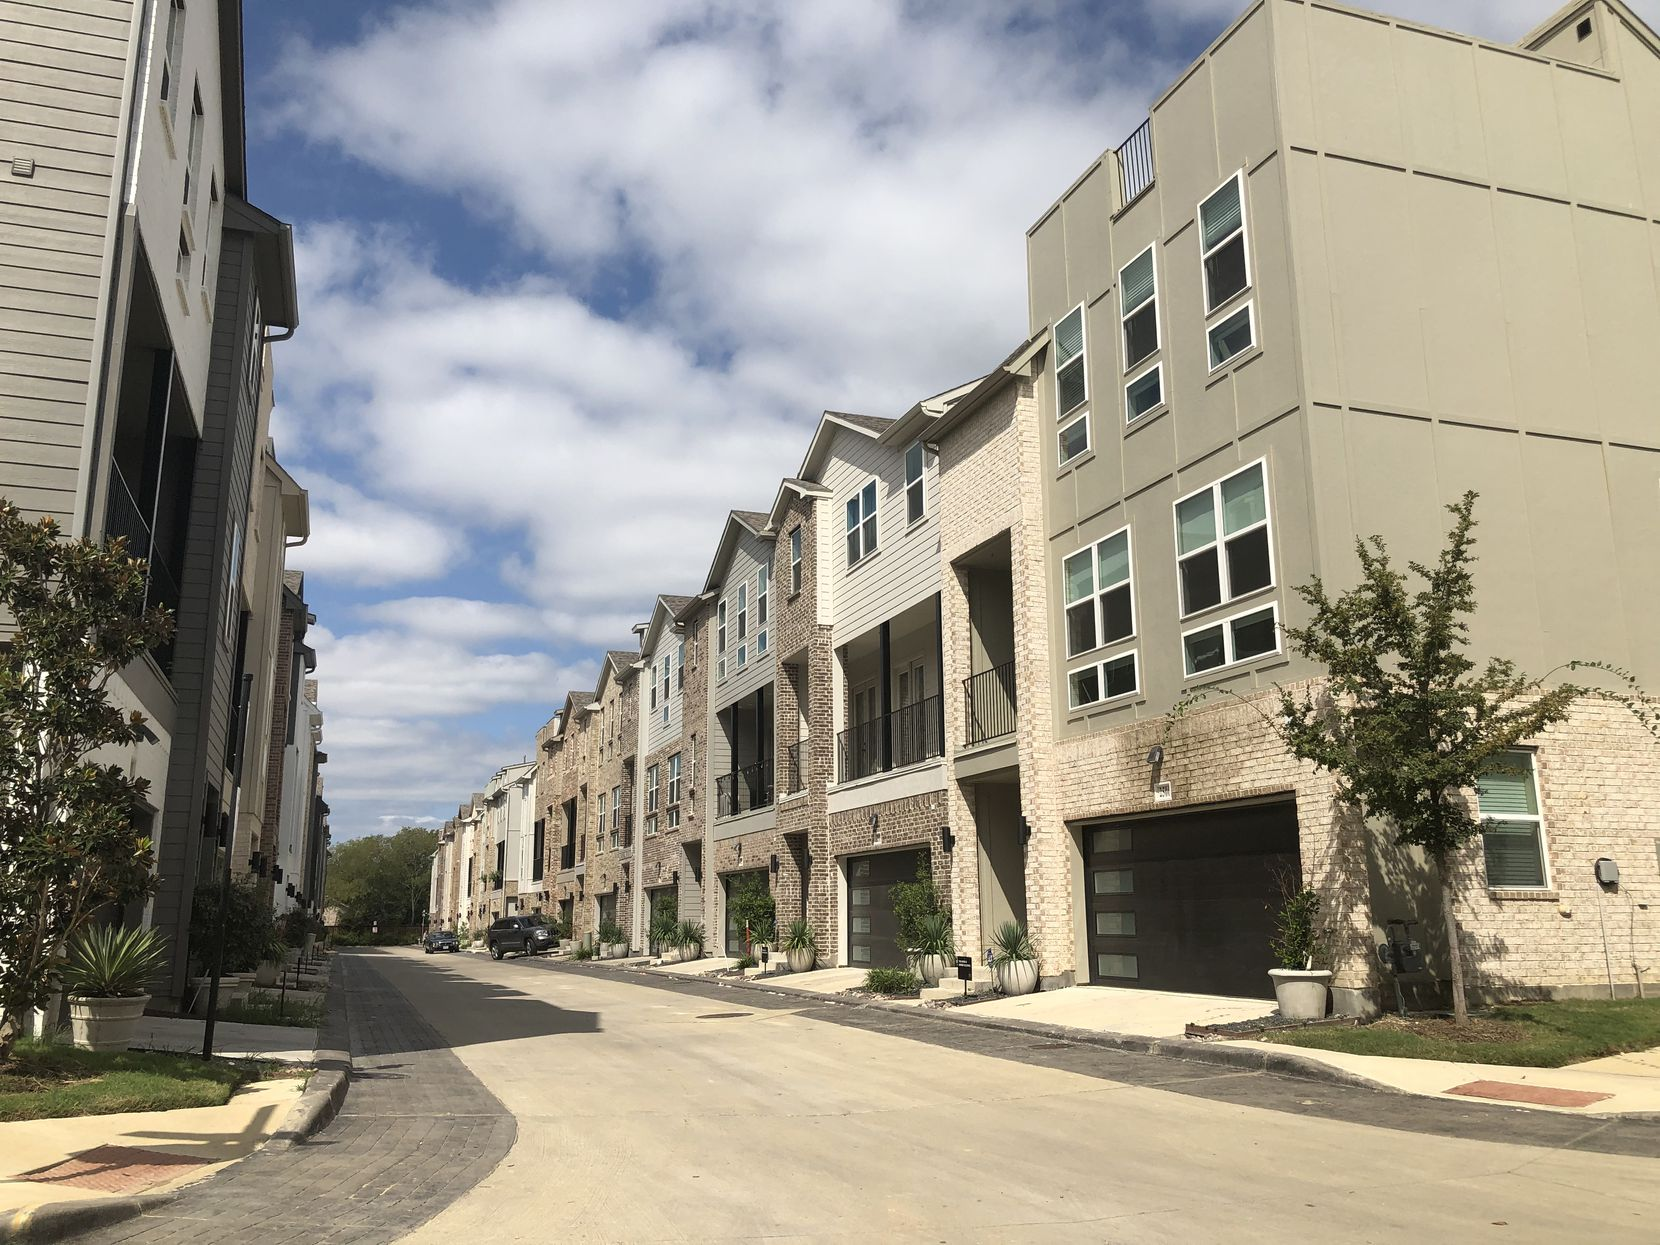 The lagoon and planned multifamily buildings would be constructed next door to Megatel Homes' successful SoHo Square community in West Dallas.